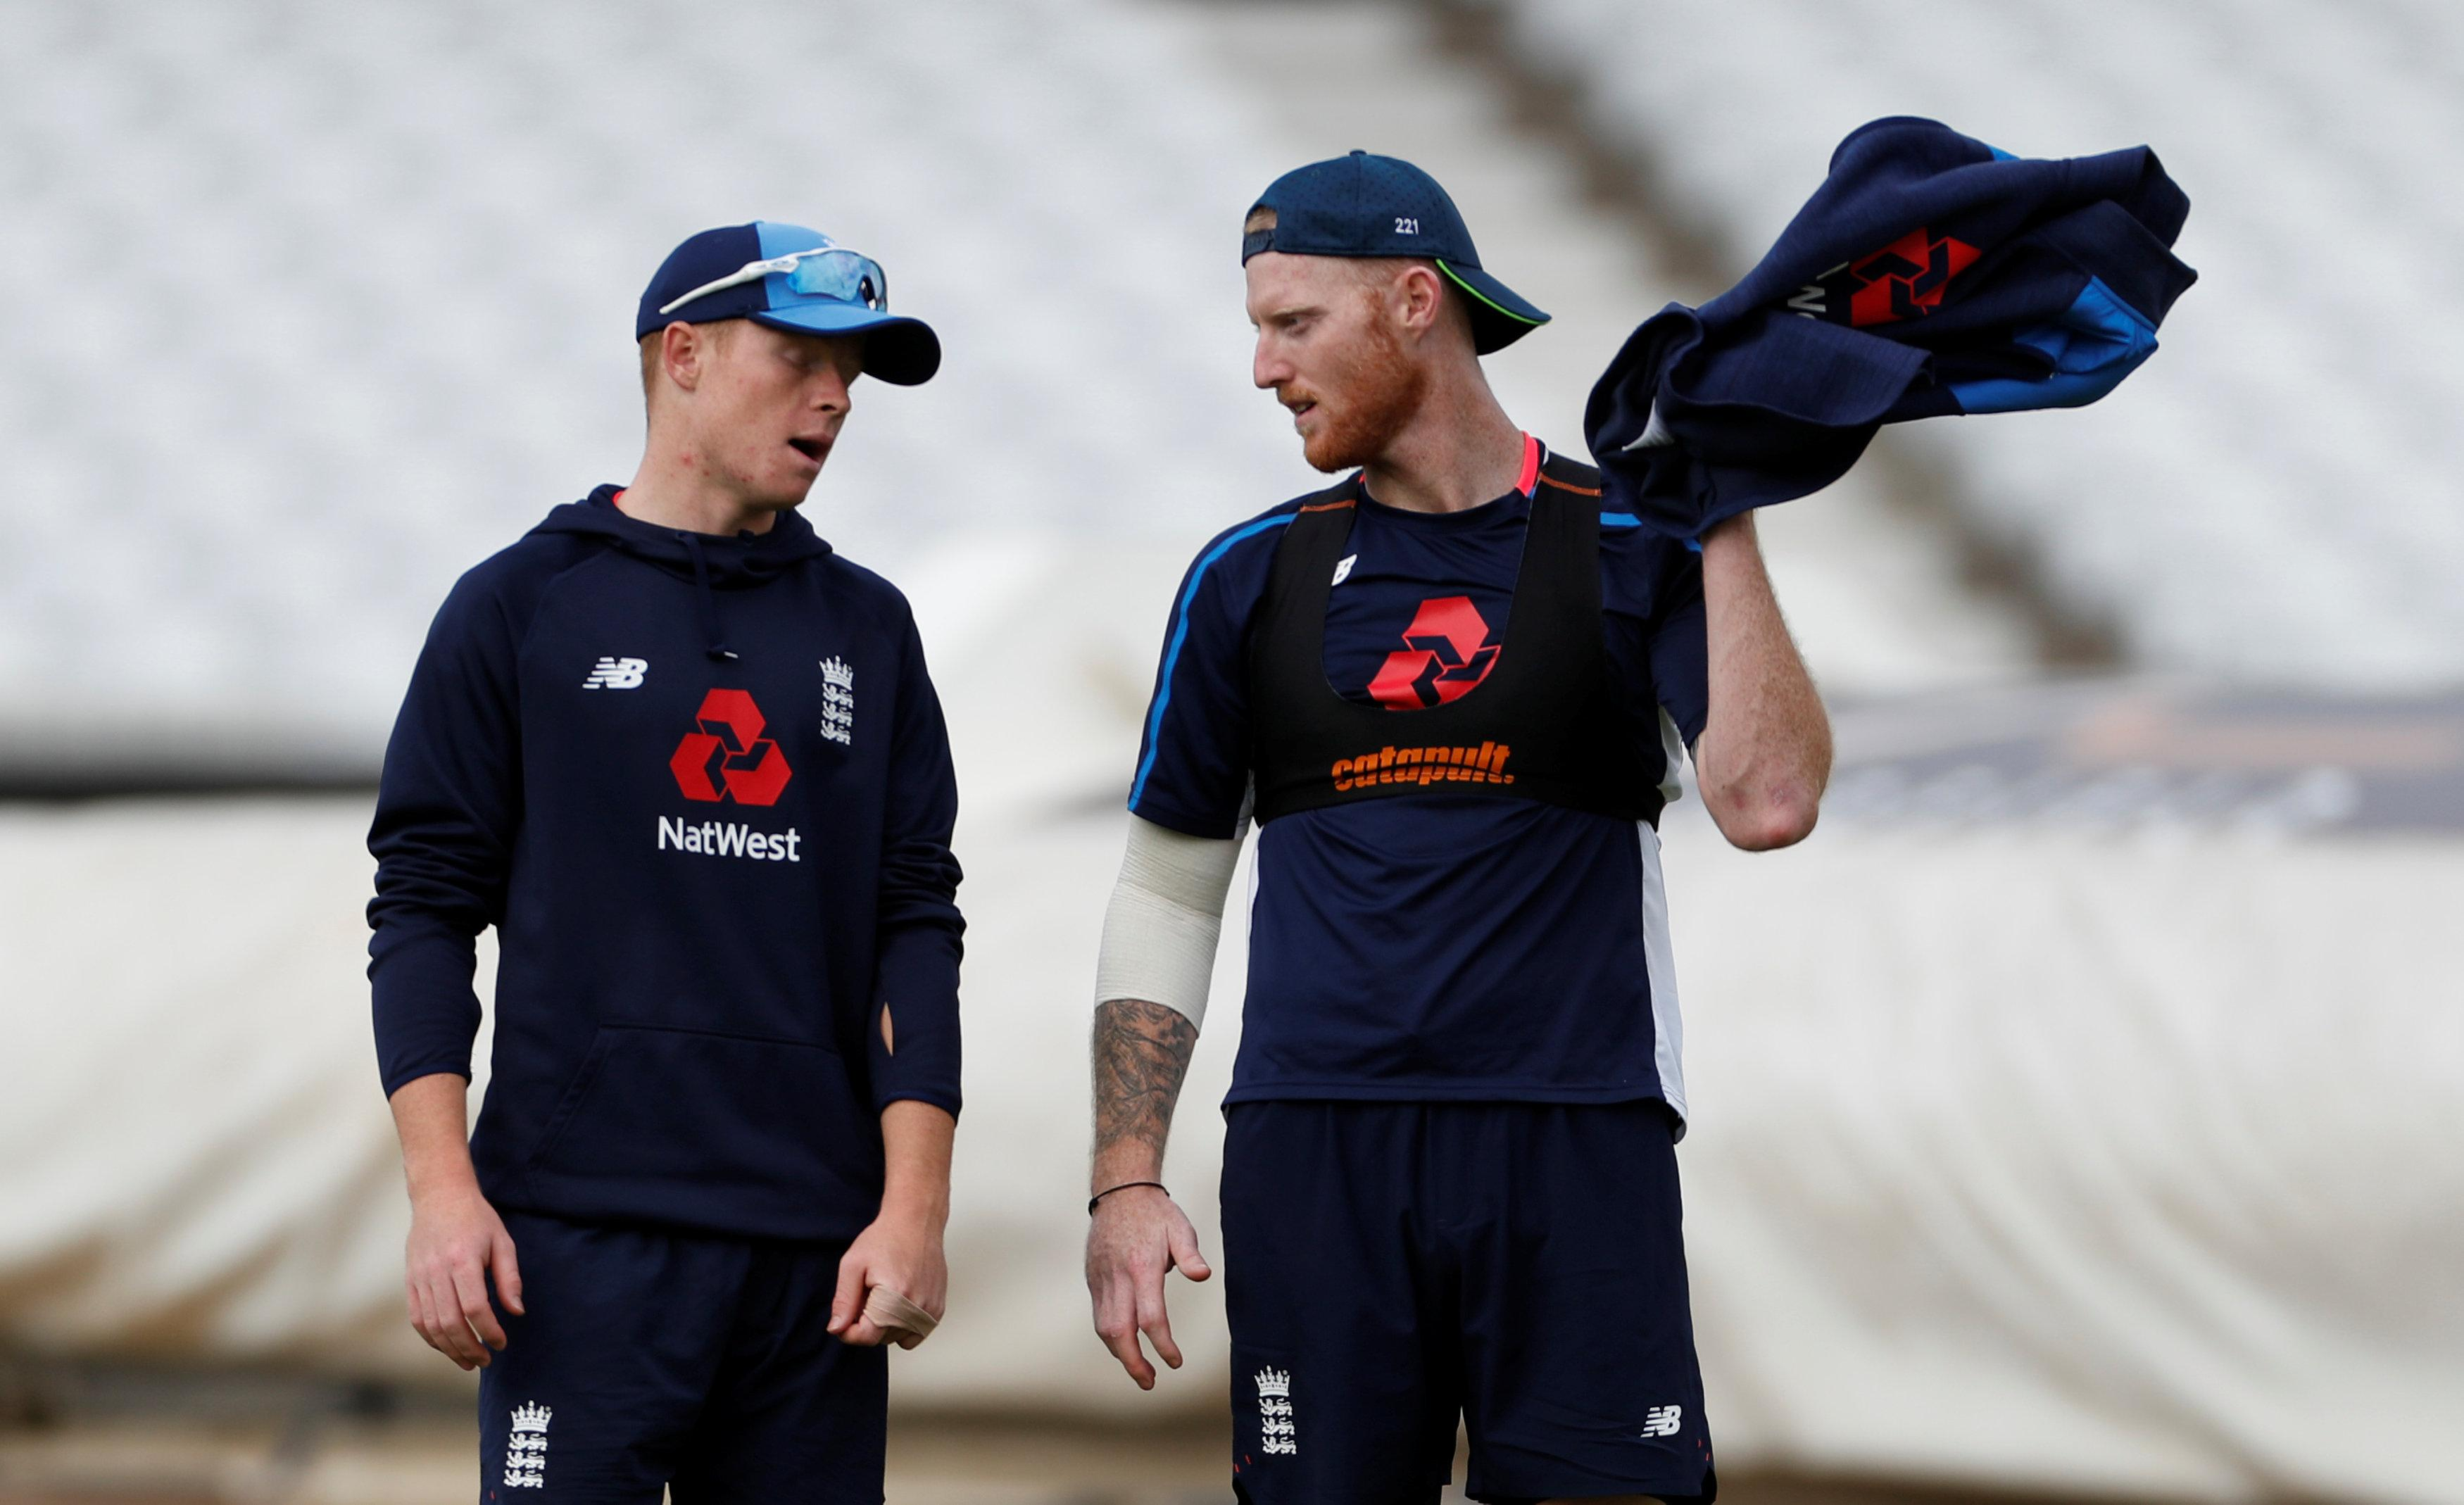 Ben Stokes is set to bat at No5 in the game, with Jonny Bairstow at No4